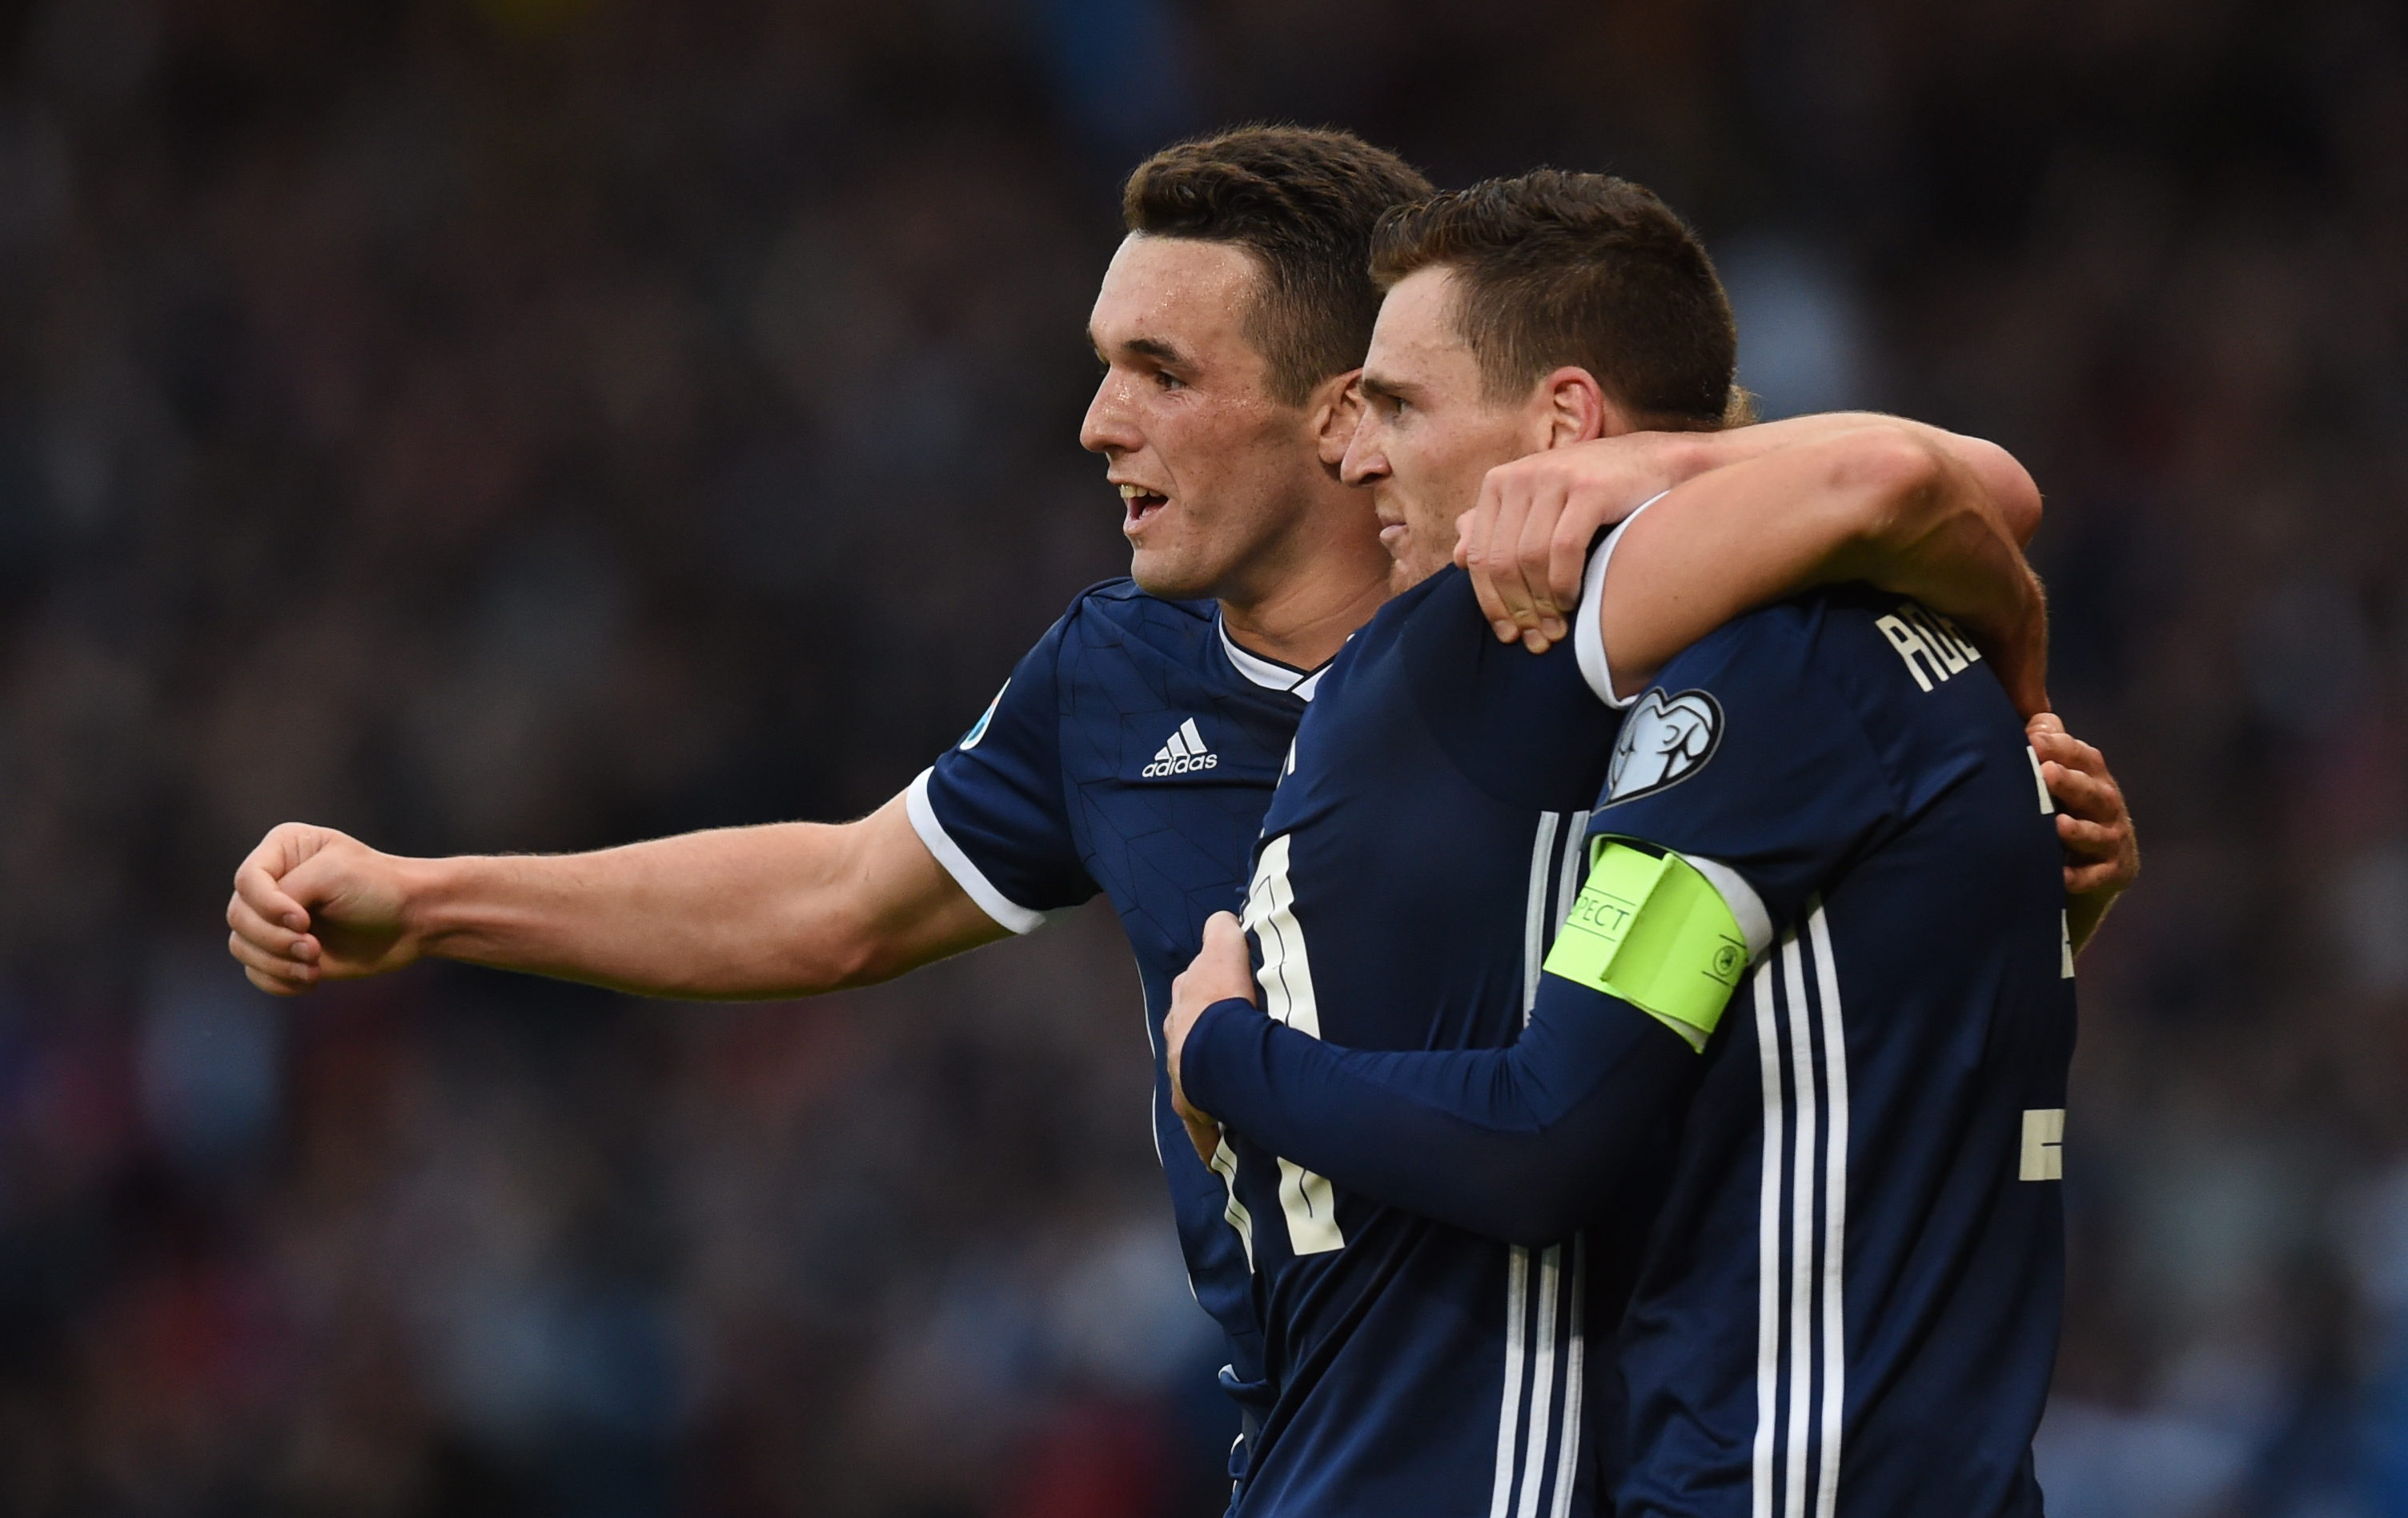 John McGinn joins in the celebrations after Andy Robertson's goal.